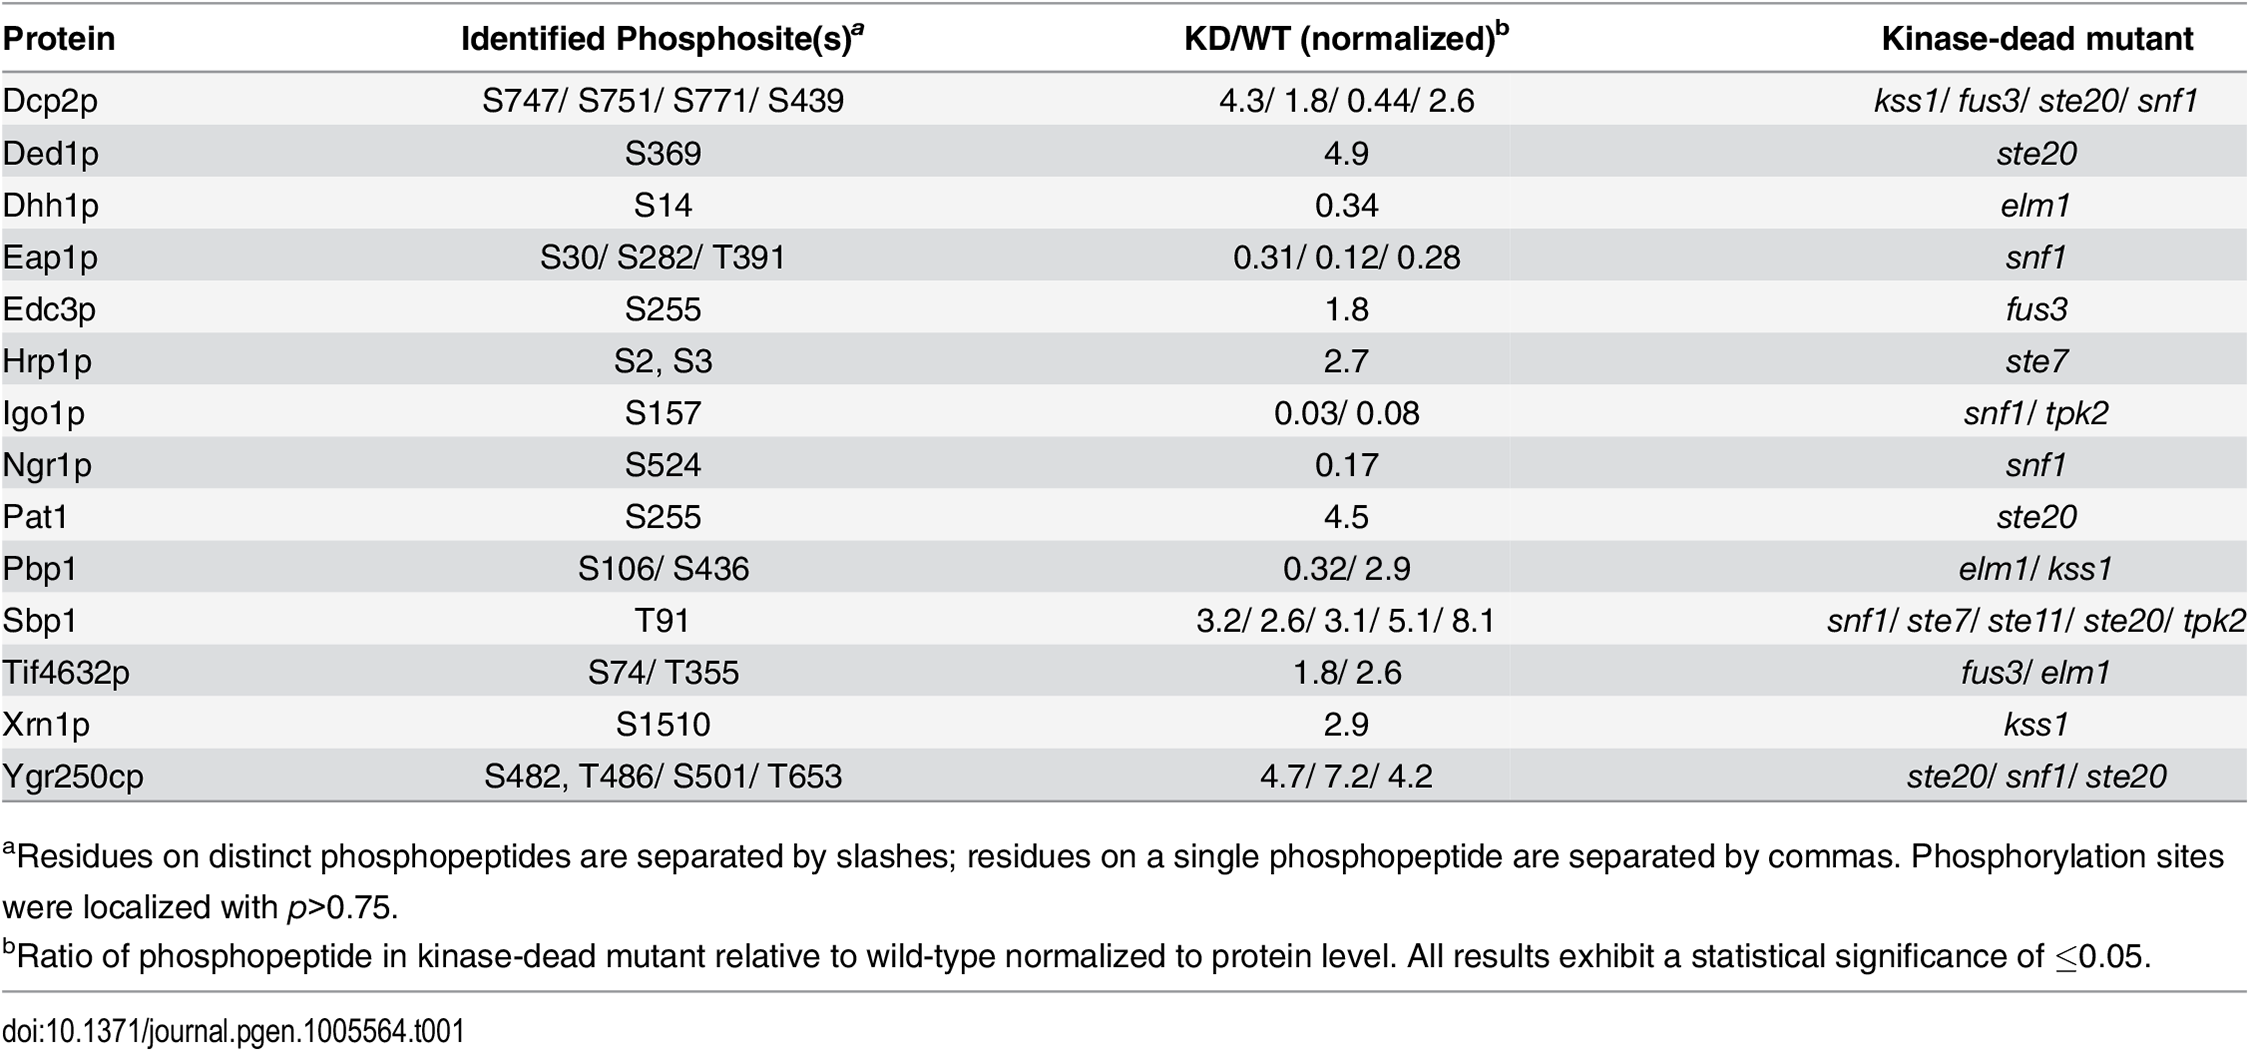 mRNP components differentially phosphorylated in kinase-dead mutants.